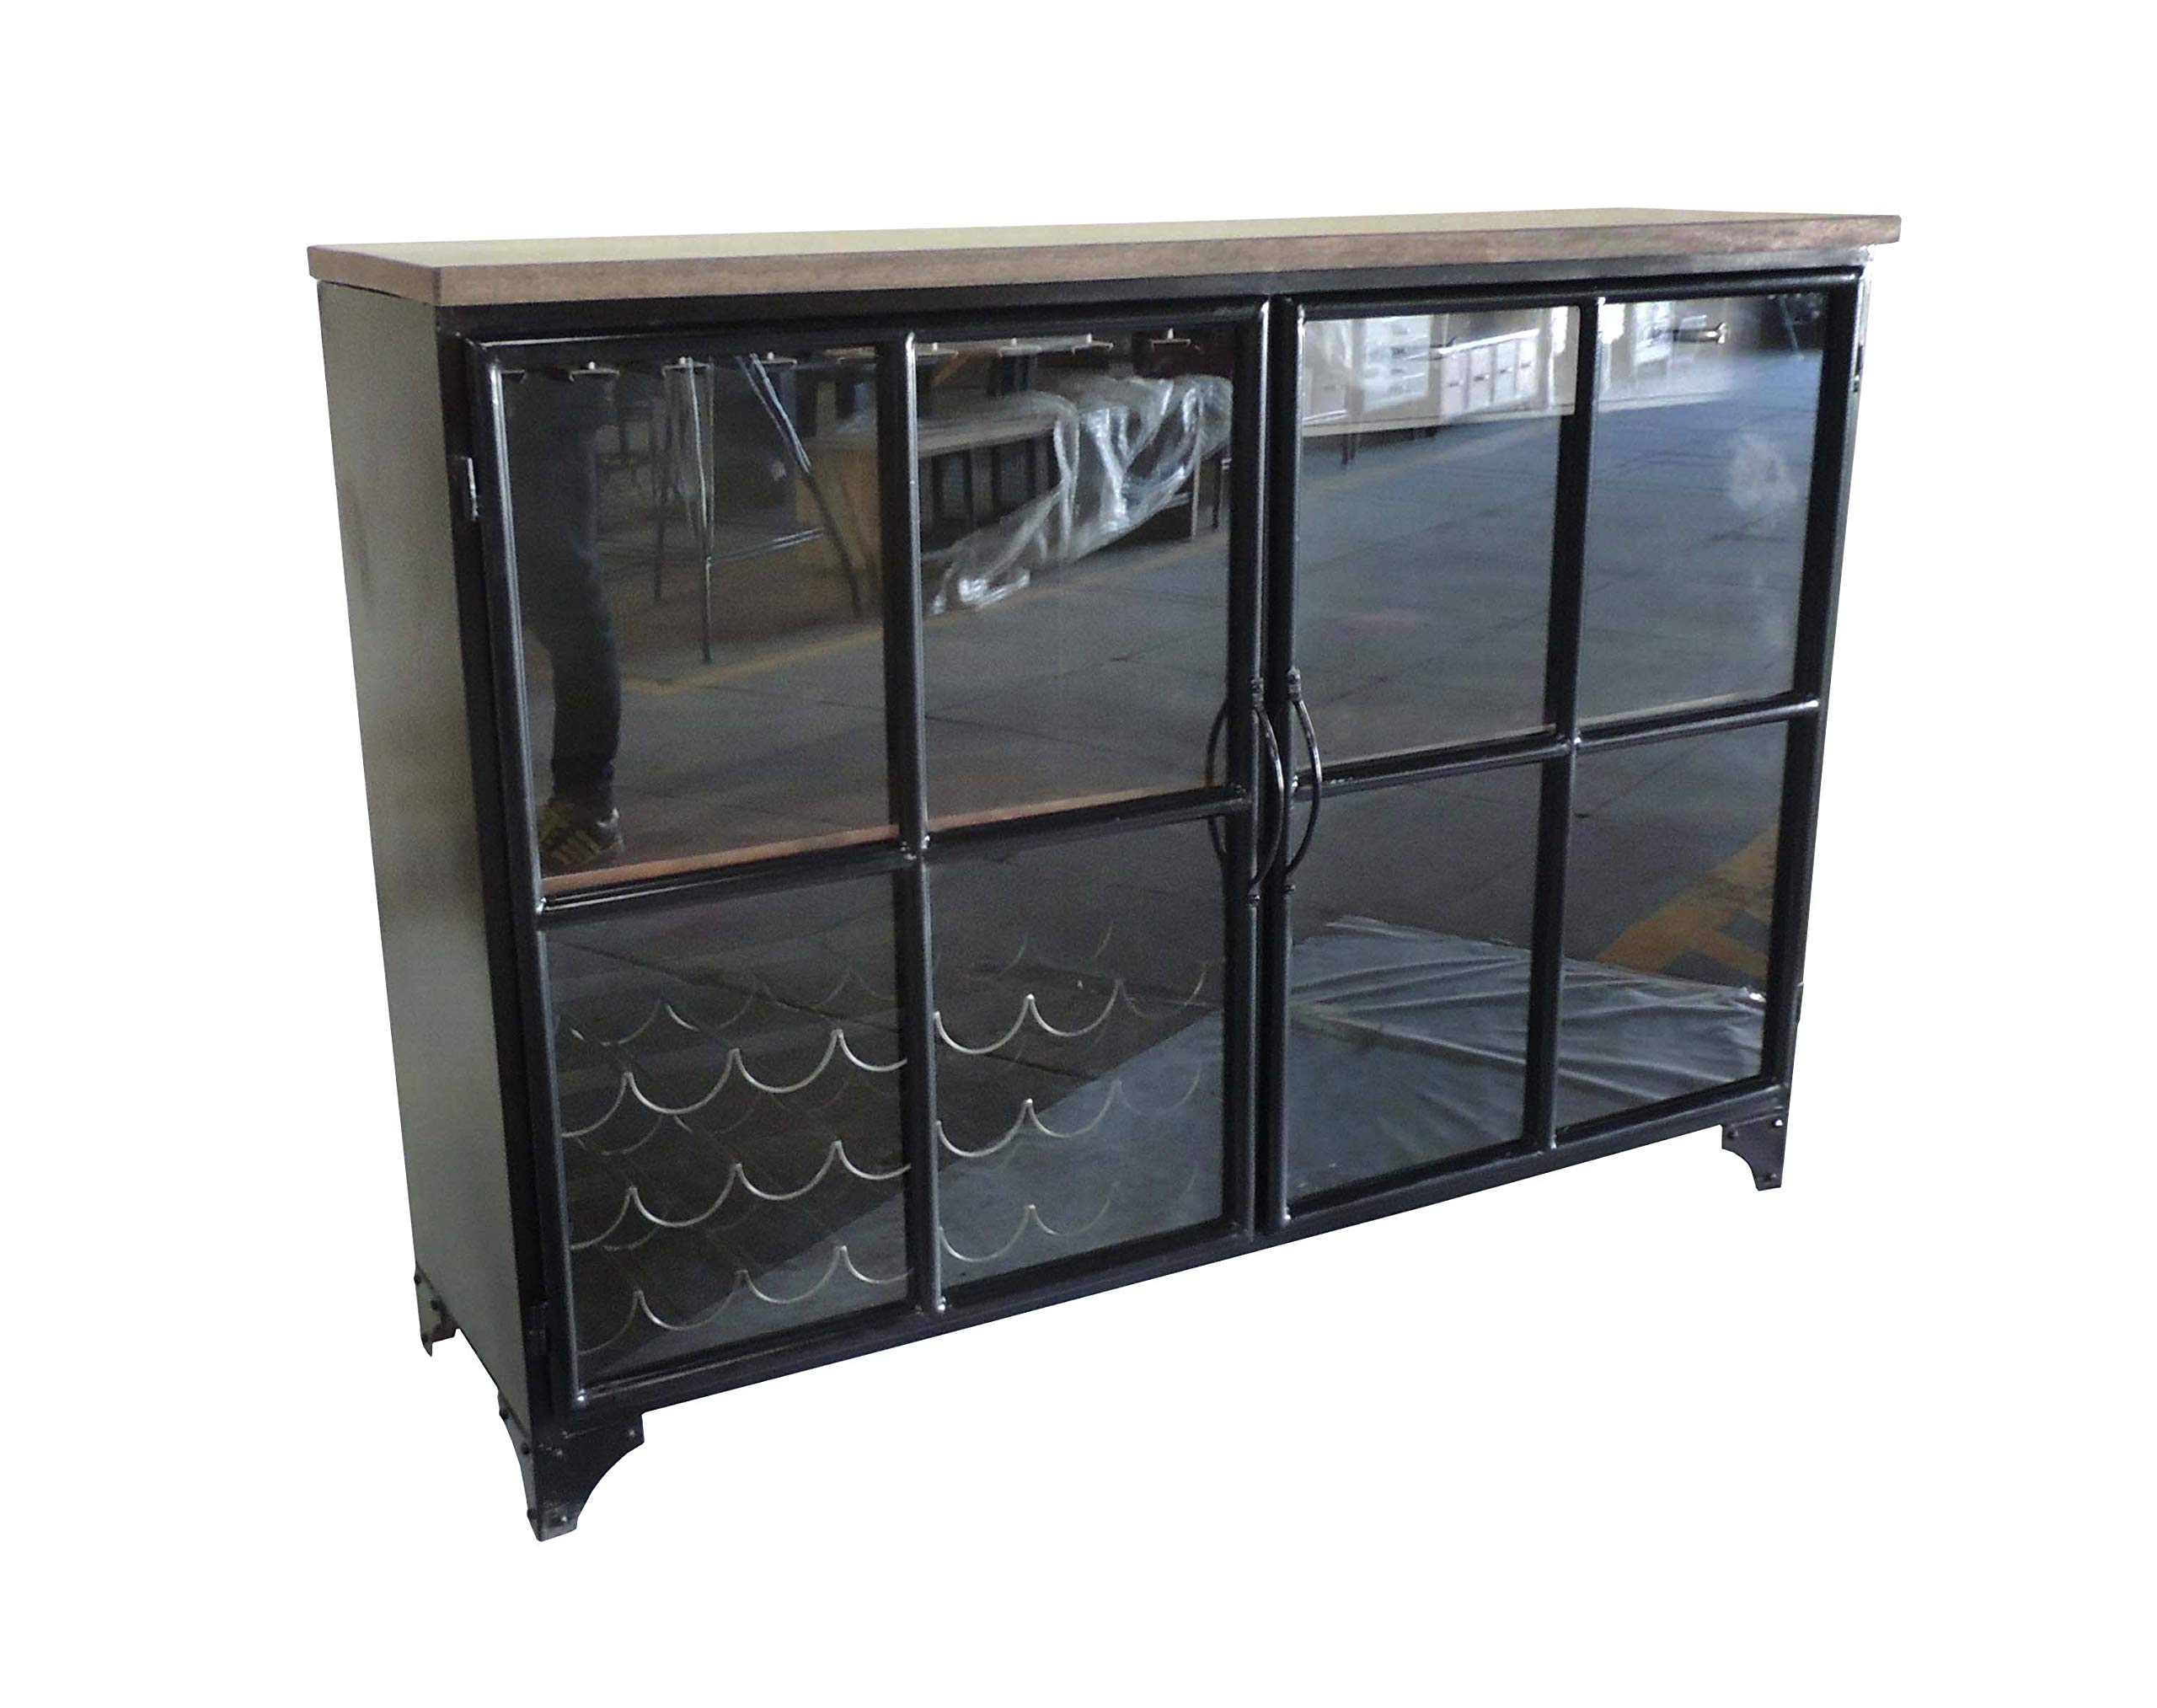 Designe Gallerie Odila Door Bar Bottle and Glass, Storage, Wine Cabinet-Gunmetal Tobacco Black, Natural by Designe Gallerie